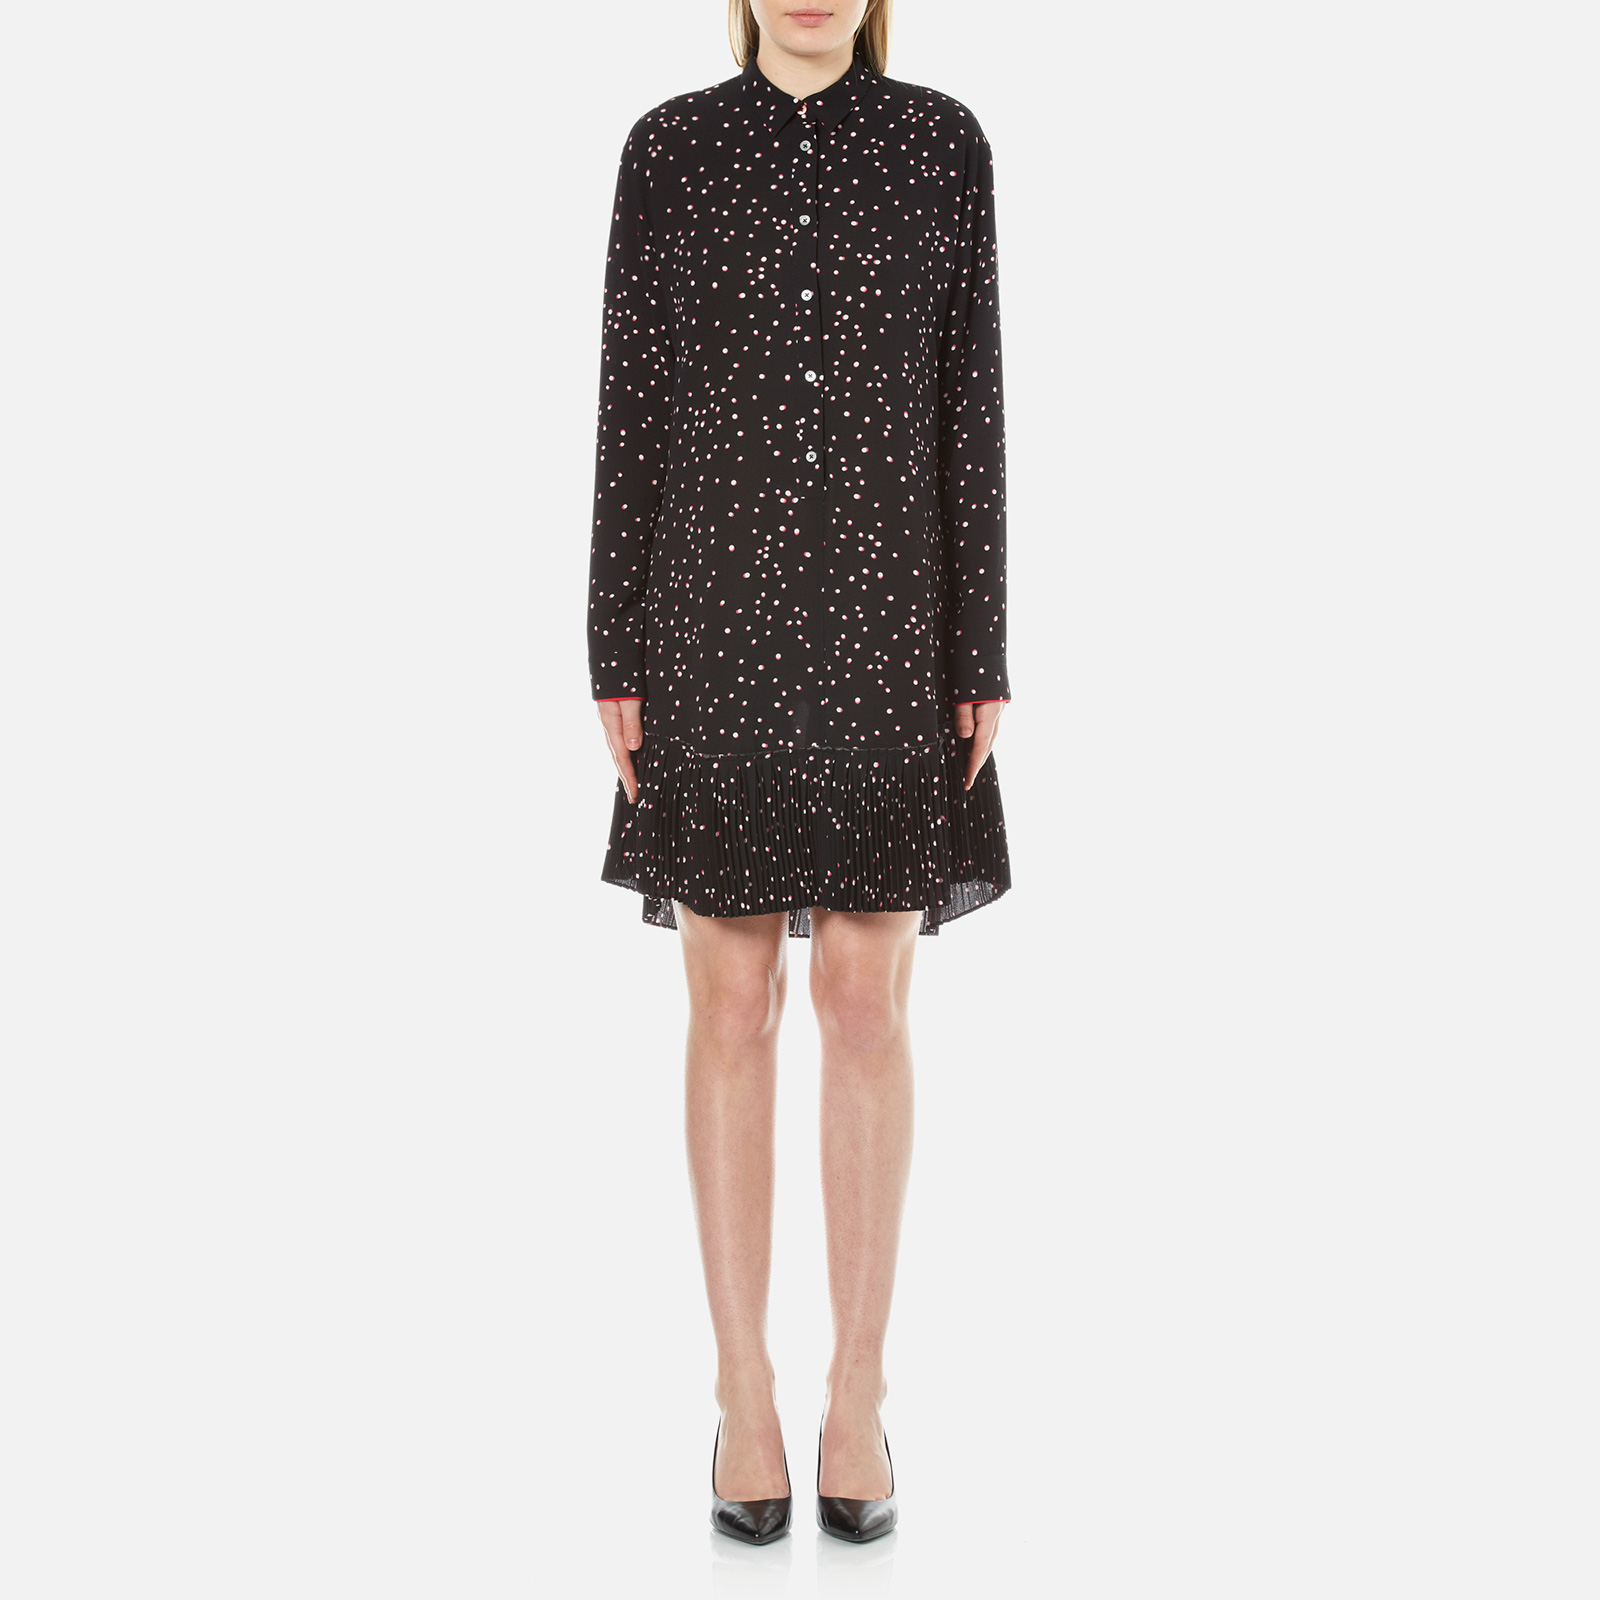 PS by Paul Smith Women s Small Spot Shirt Dress - Black - Free UK Delivery  over £50 e15267cfe